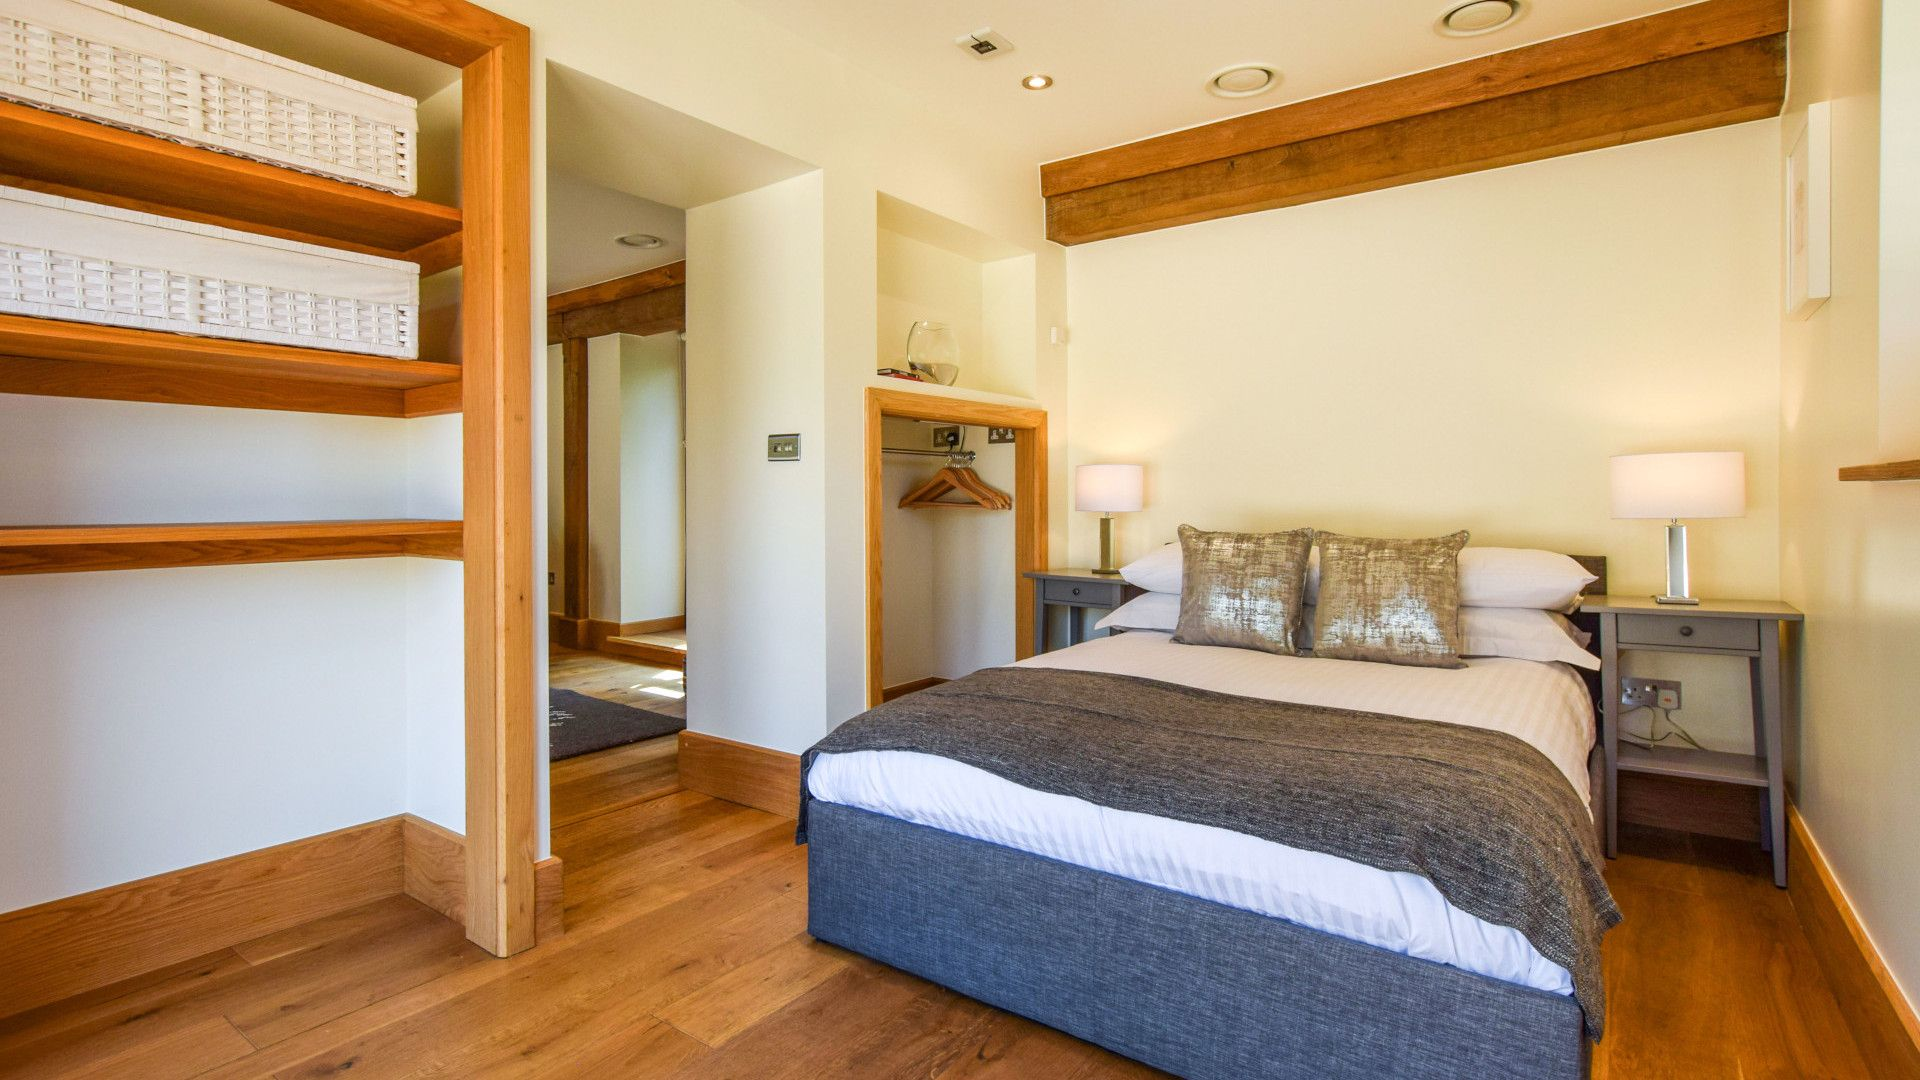 Annexe bedroom with double bed, Old Oak House, Bolthole Retreats